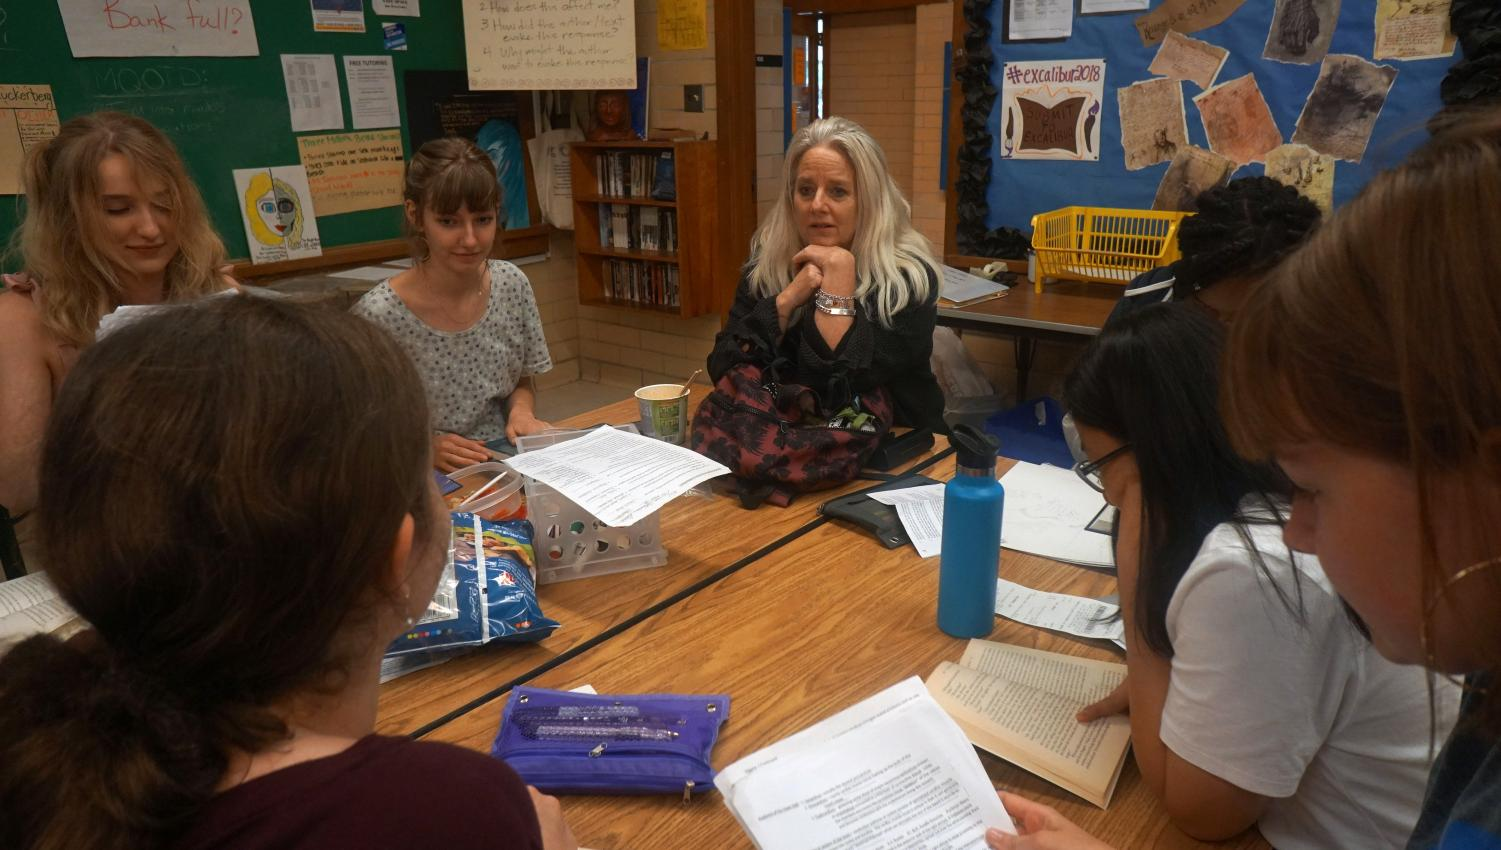 On Ramps is a rhetoric-based junior English class that is more focused on writing, rather than reading literature like other English classes. It also offers UT credit, and the students get taught by English teacher Ms. Adamson and a UT professor.